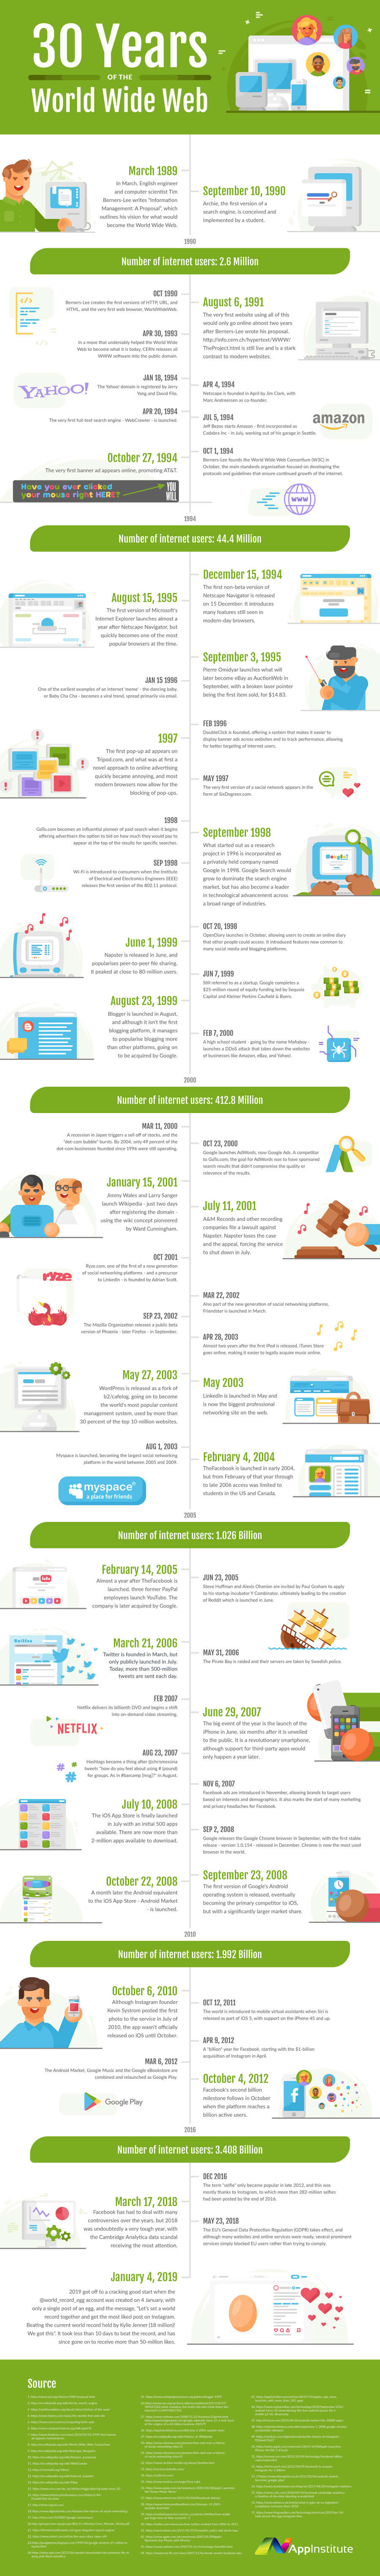 30-years-world-wide-web-internet-infographic-plaza